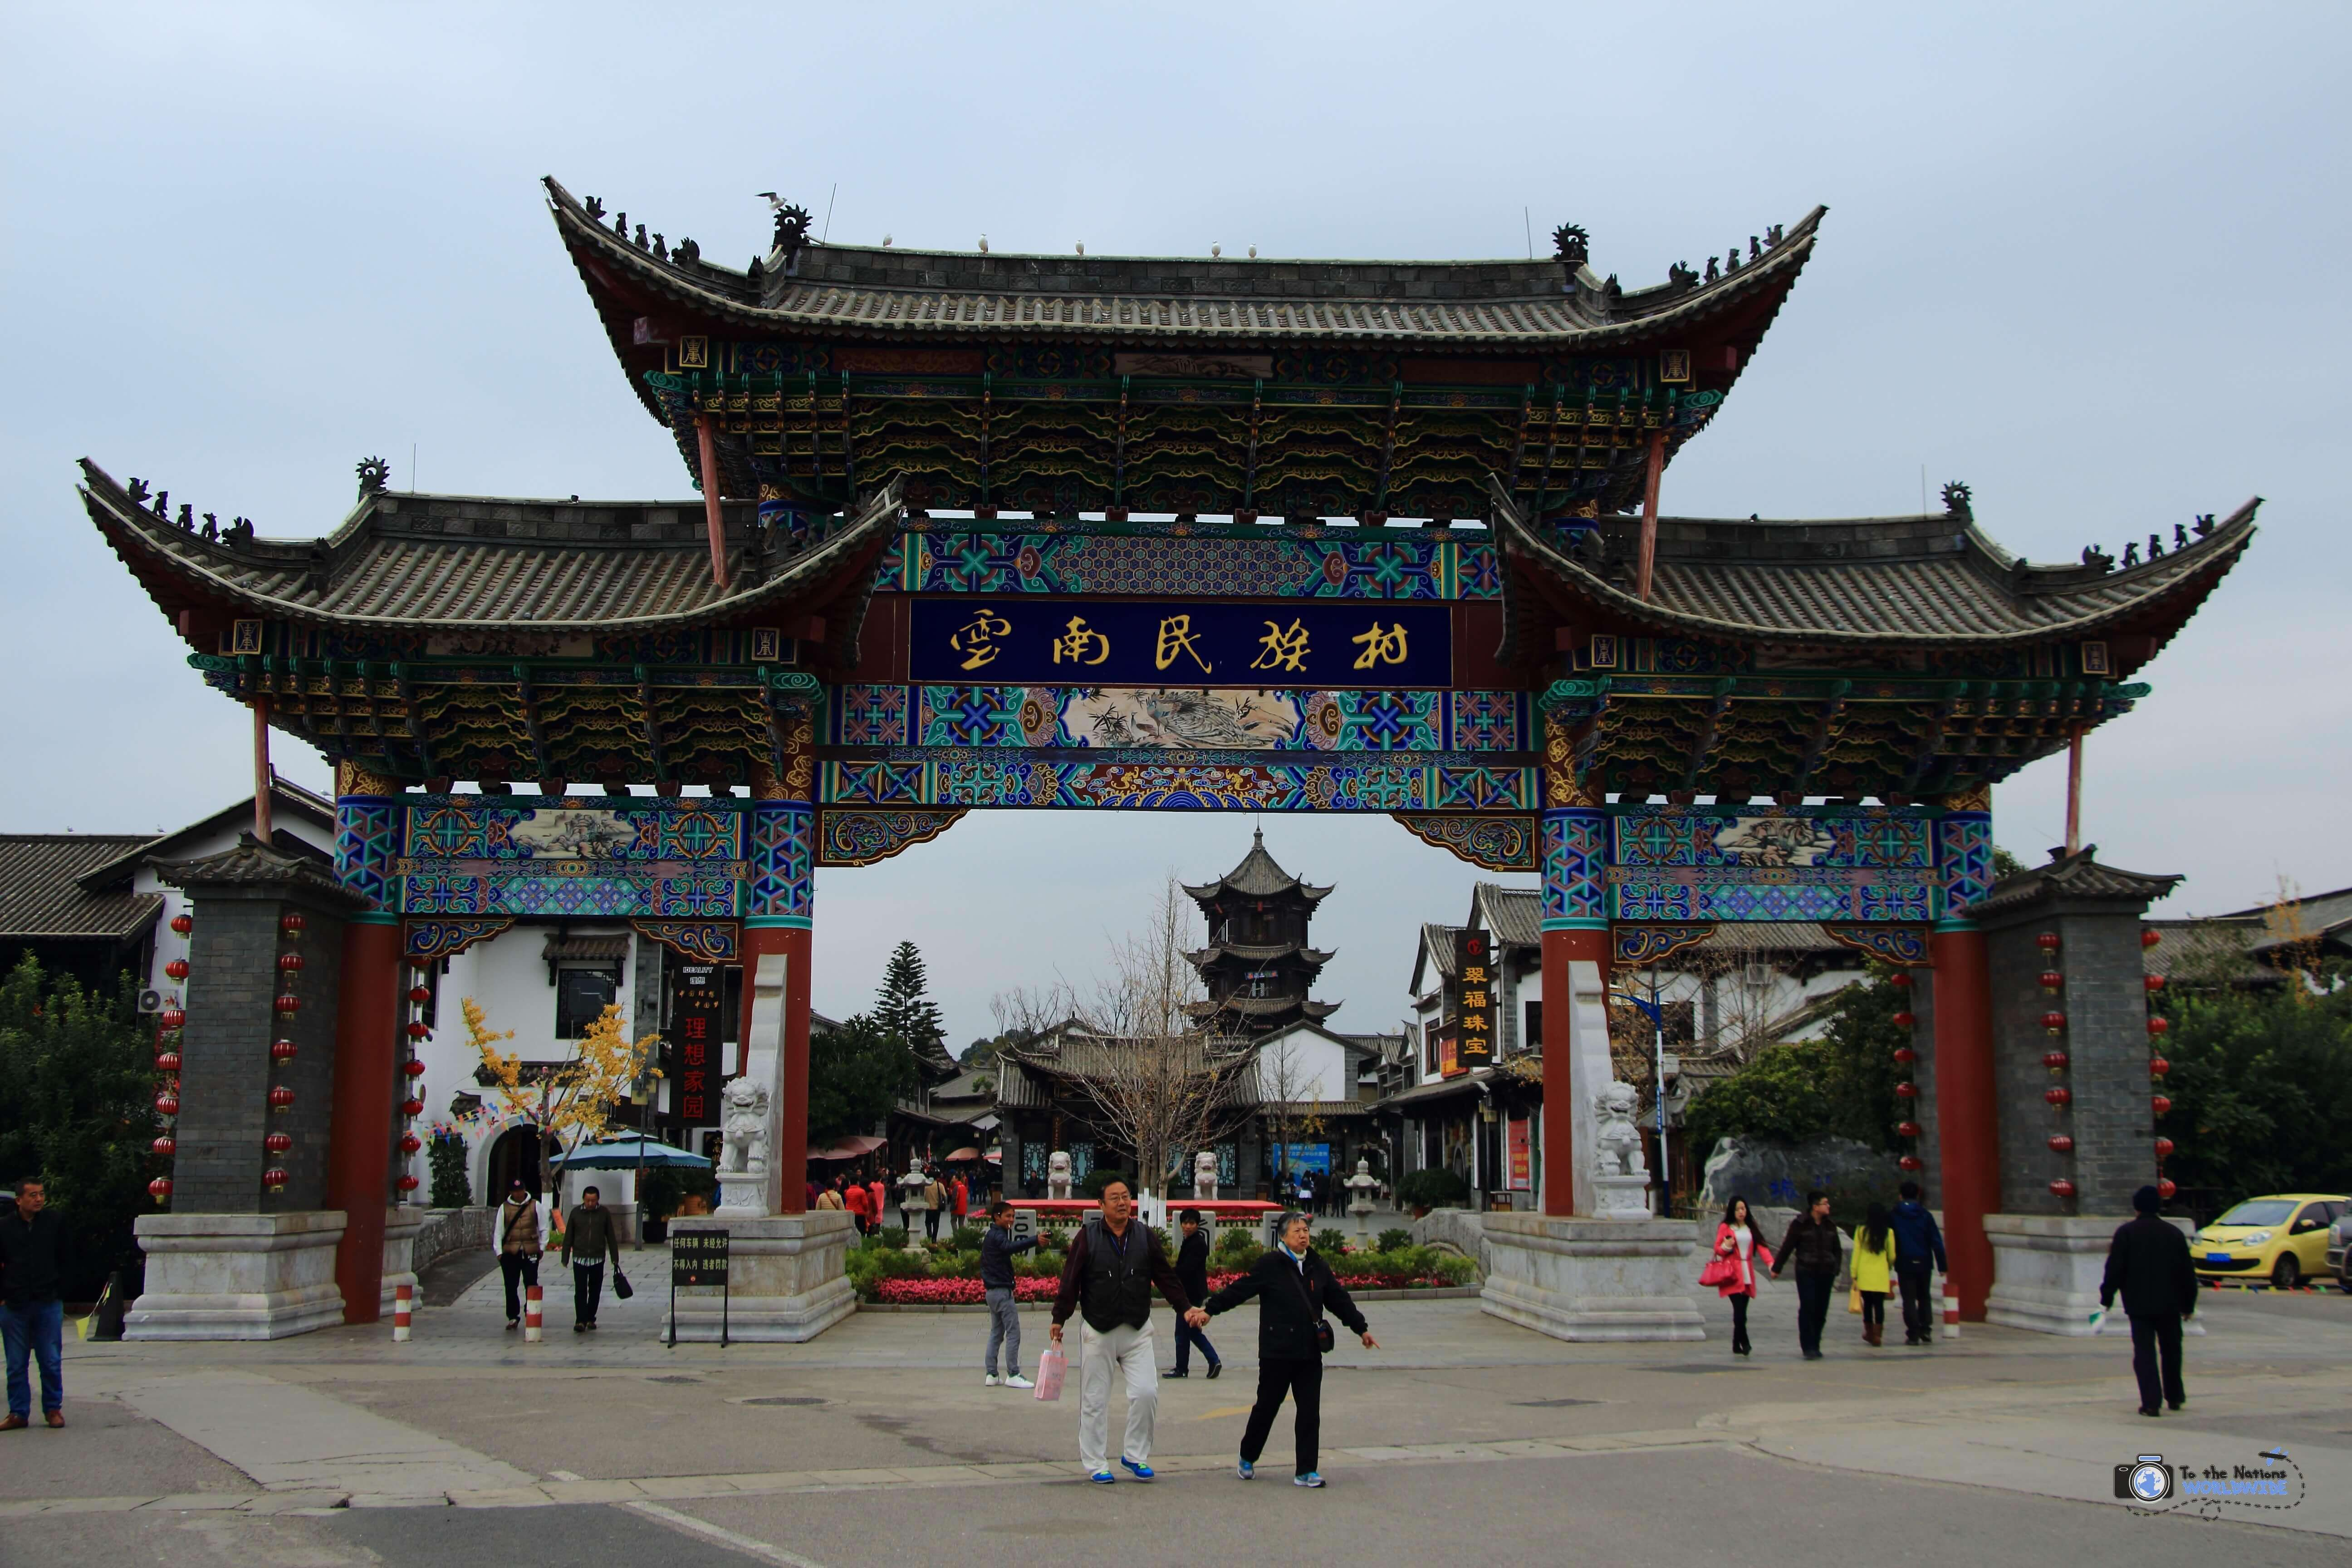 Entrance Gate to Yunnan Ethnic Village, Kunming, China